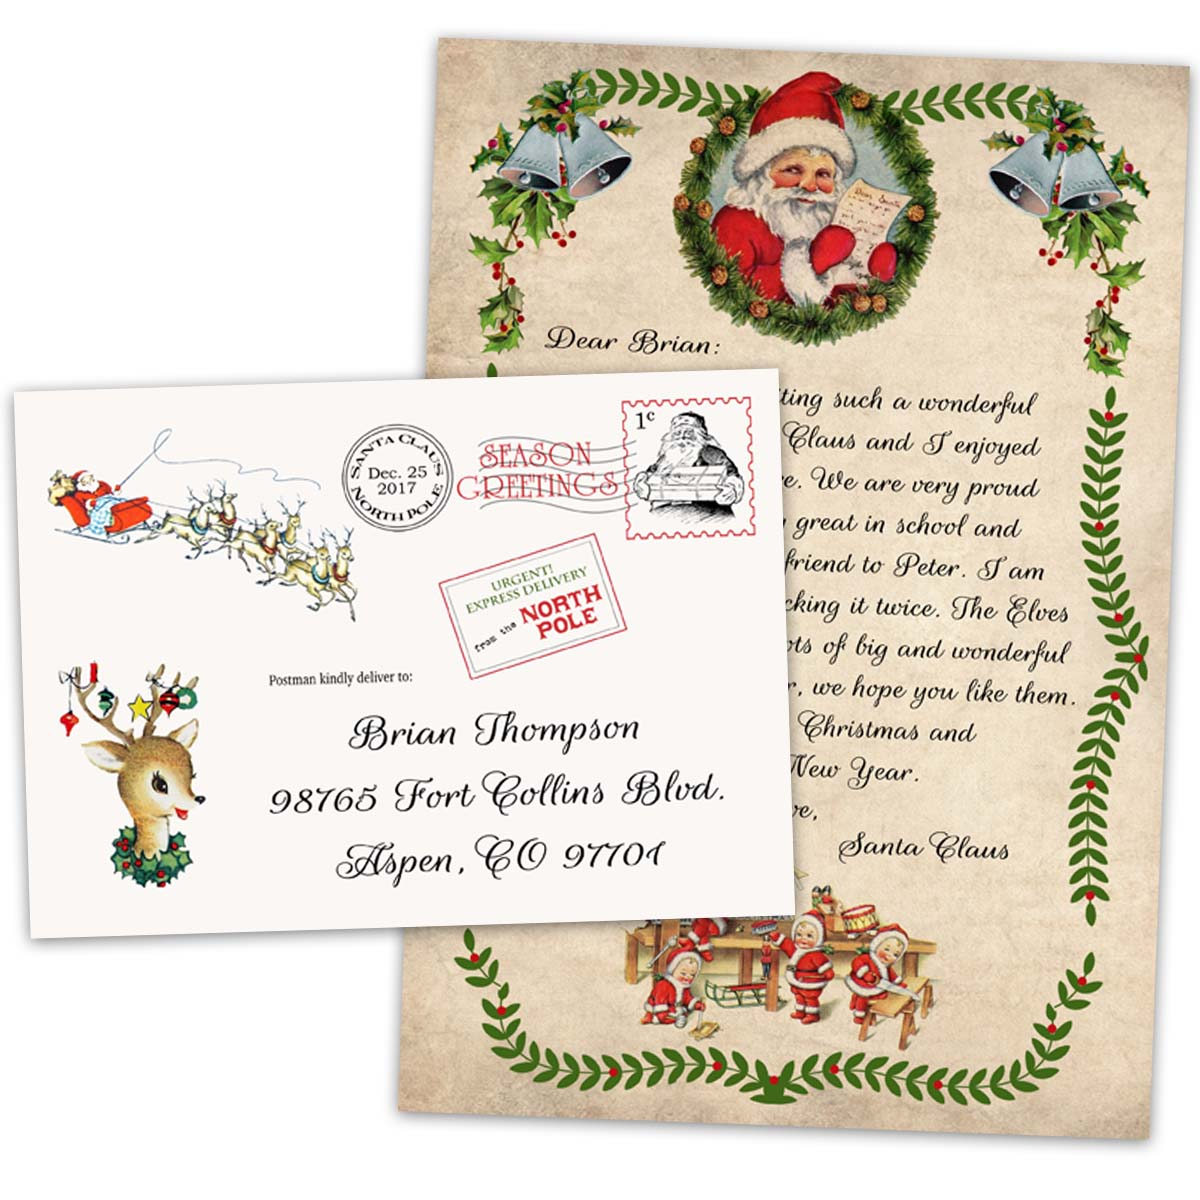 Personalized christmas letter from santa claus official north pole personalized christmas letter from santa claus spiritdancerdesigns Images